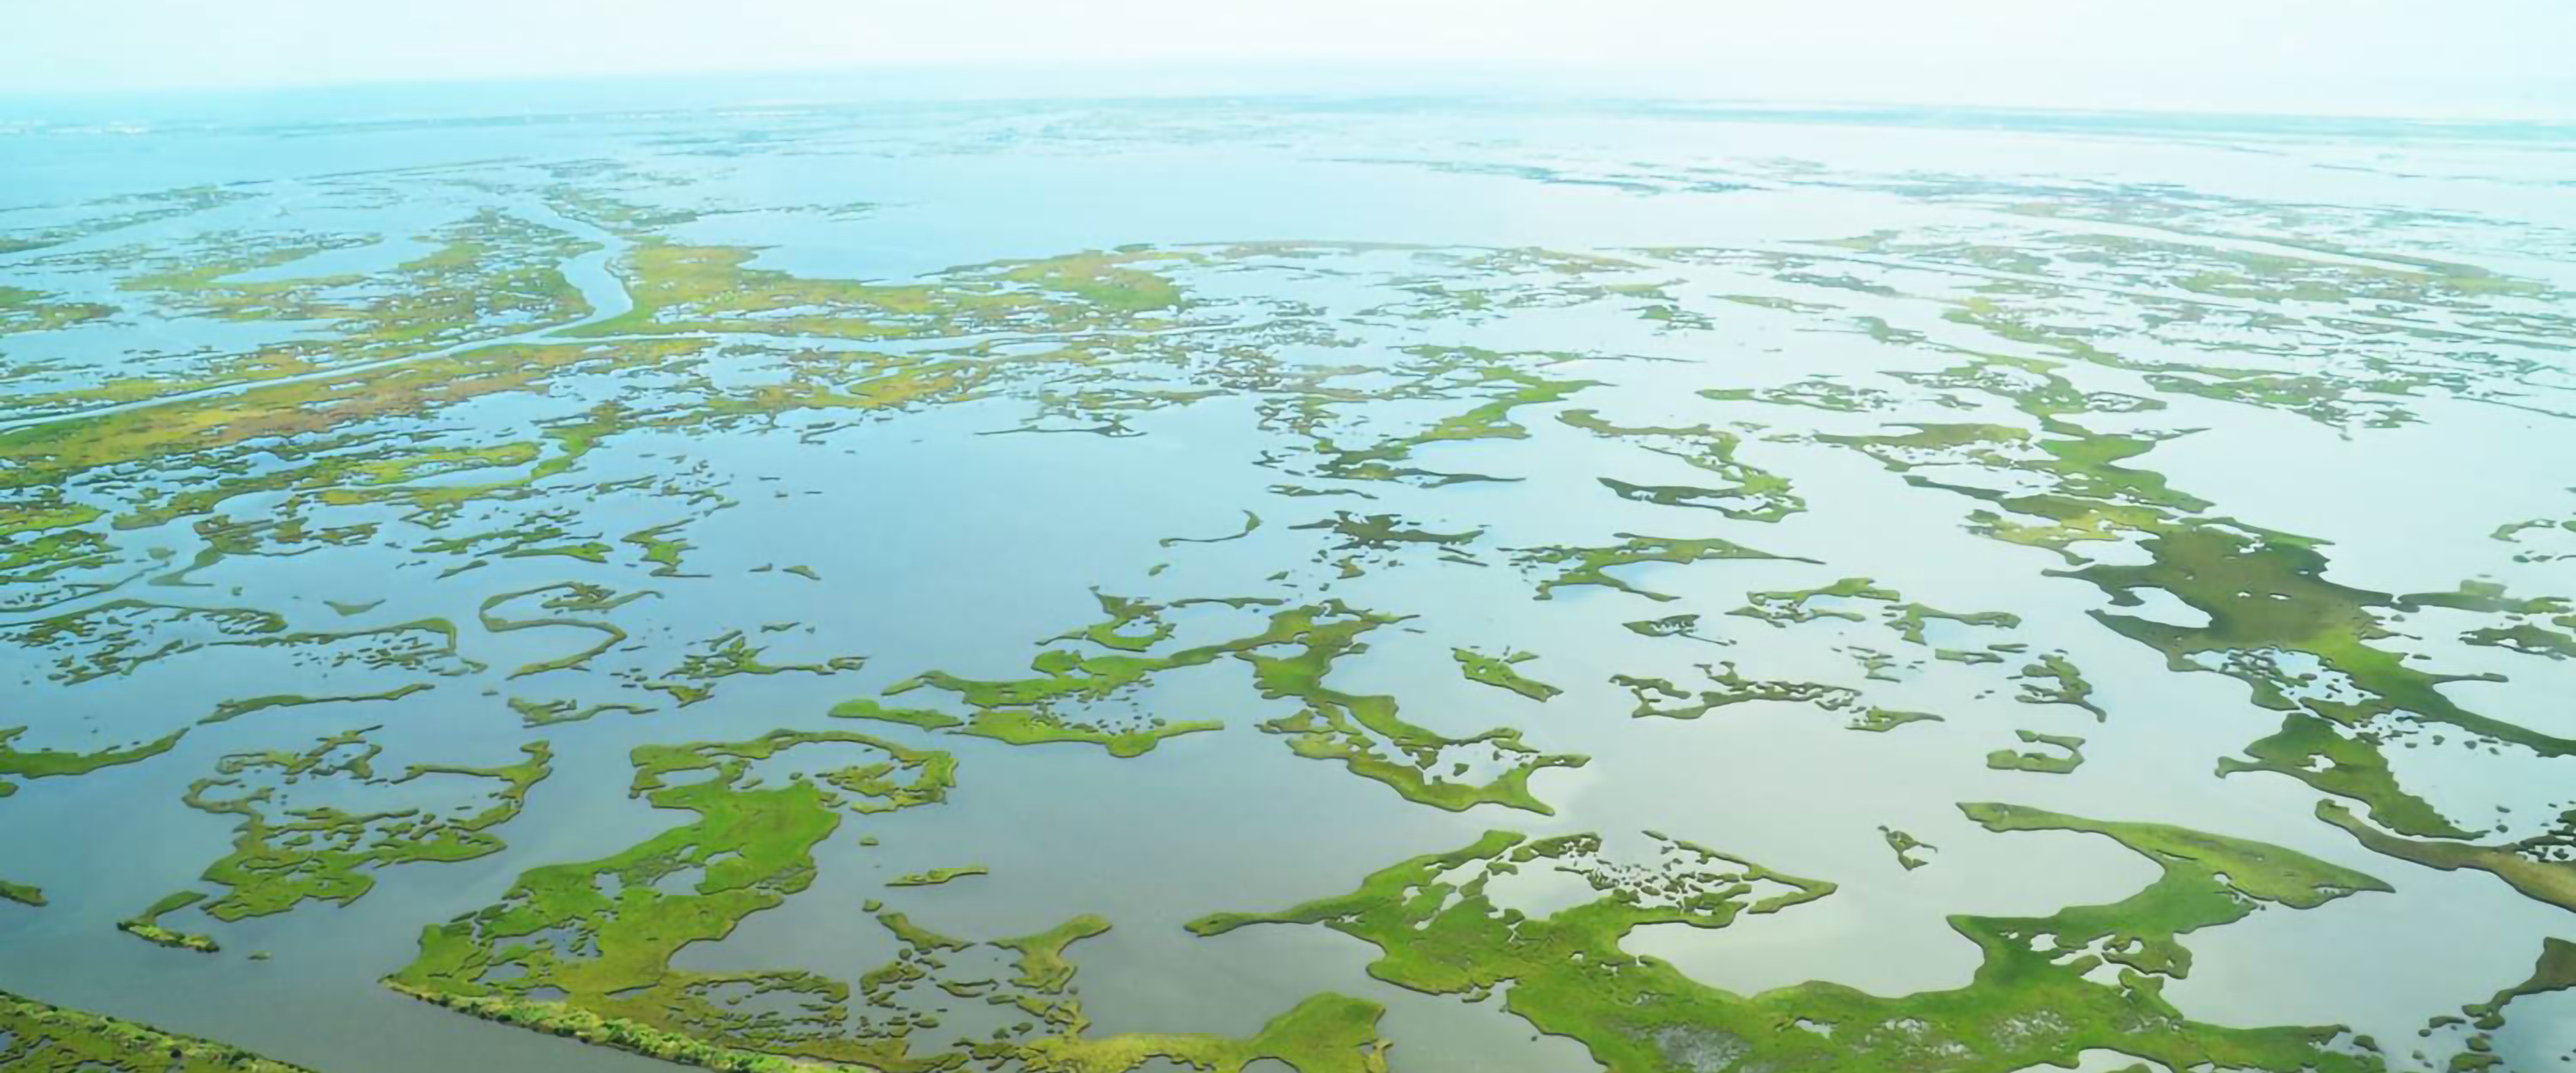 Draft Plan for Design of Barataria Marsh Creation Project Open for Comment